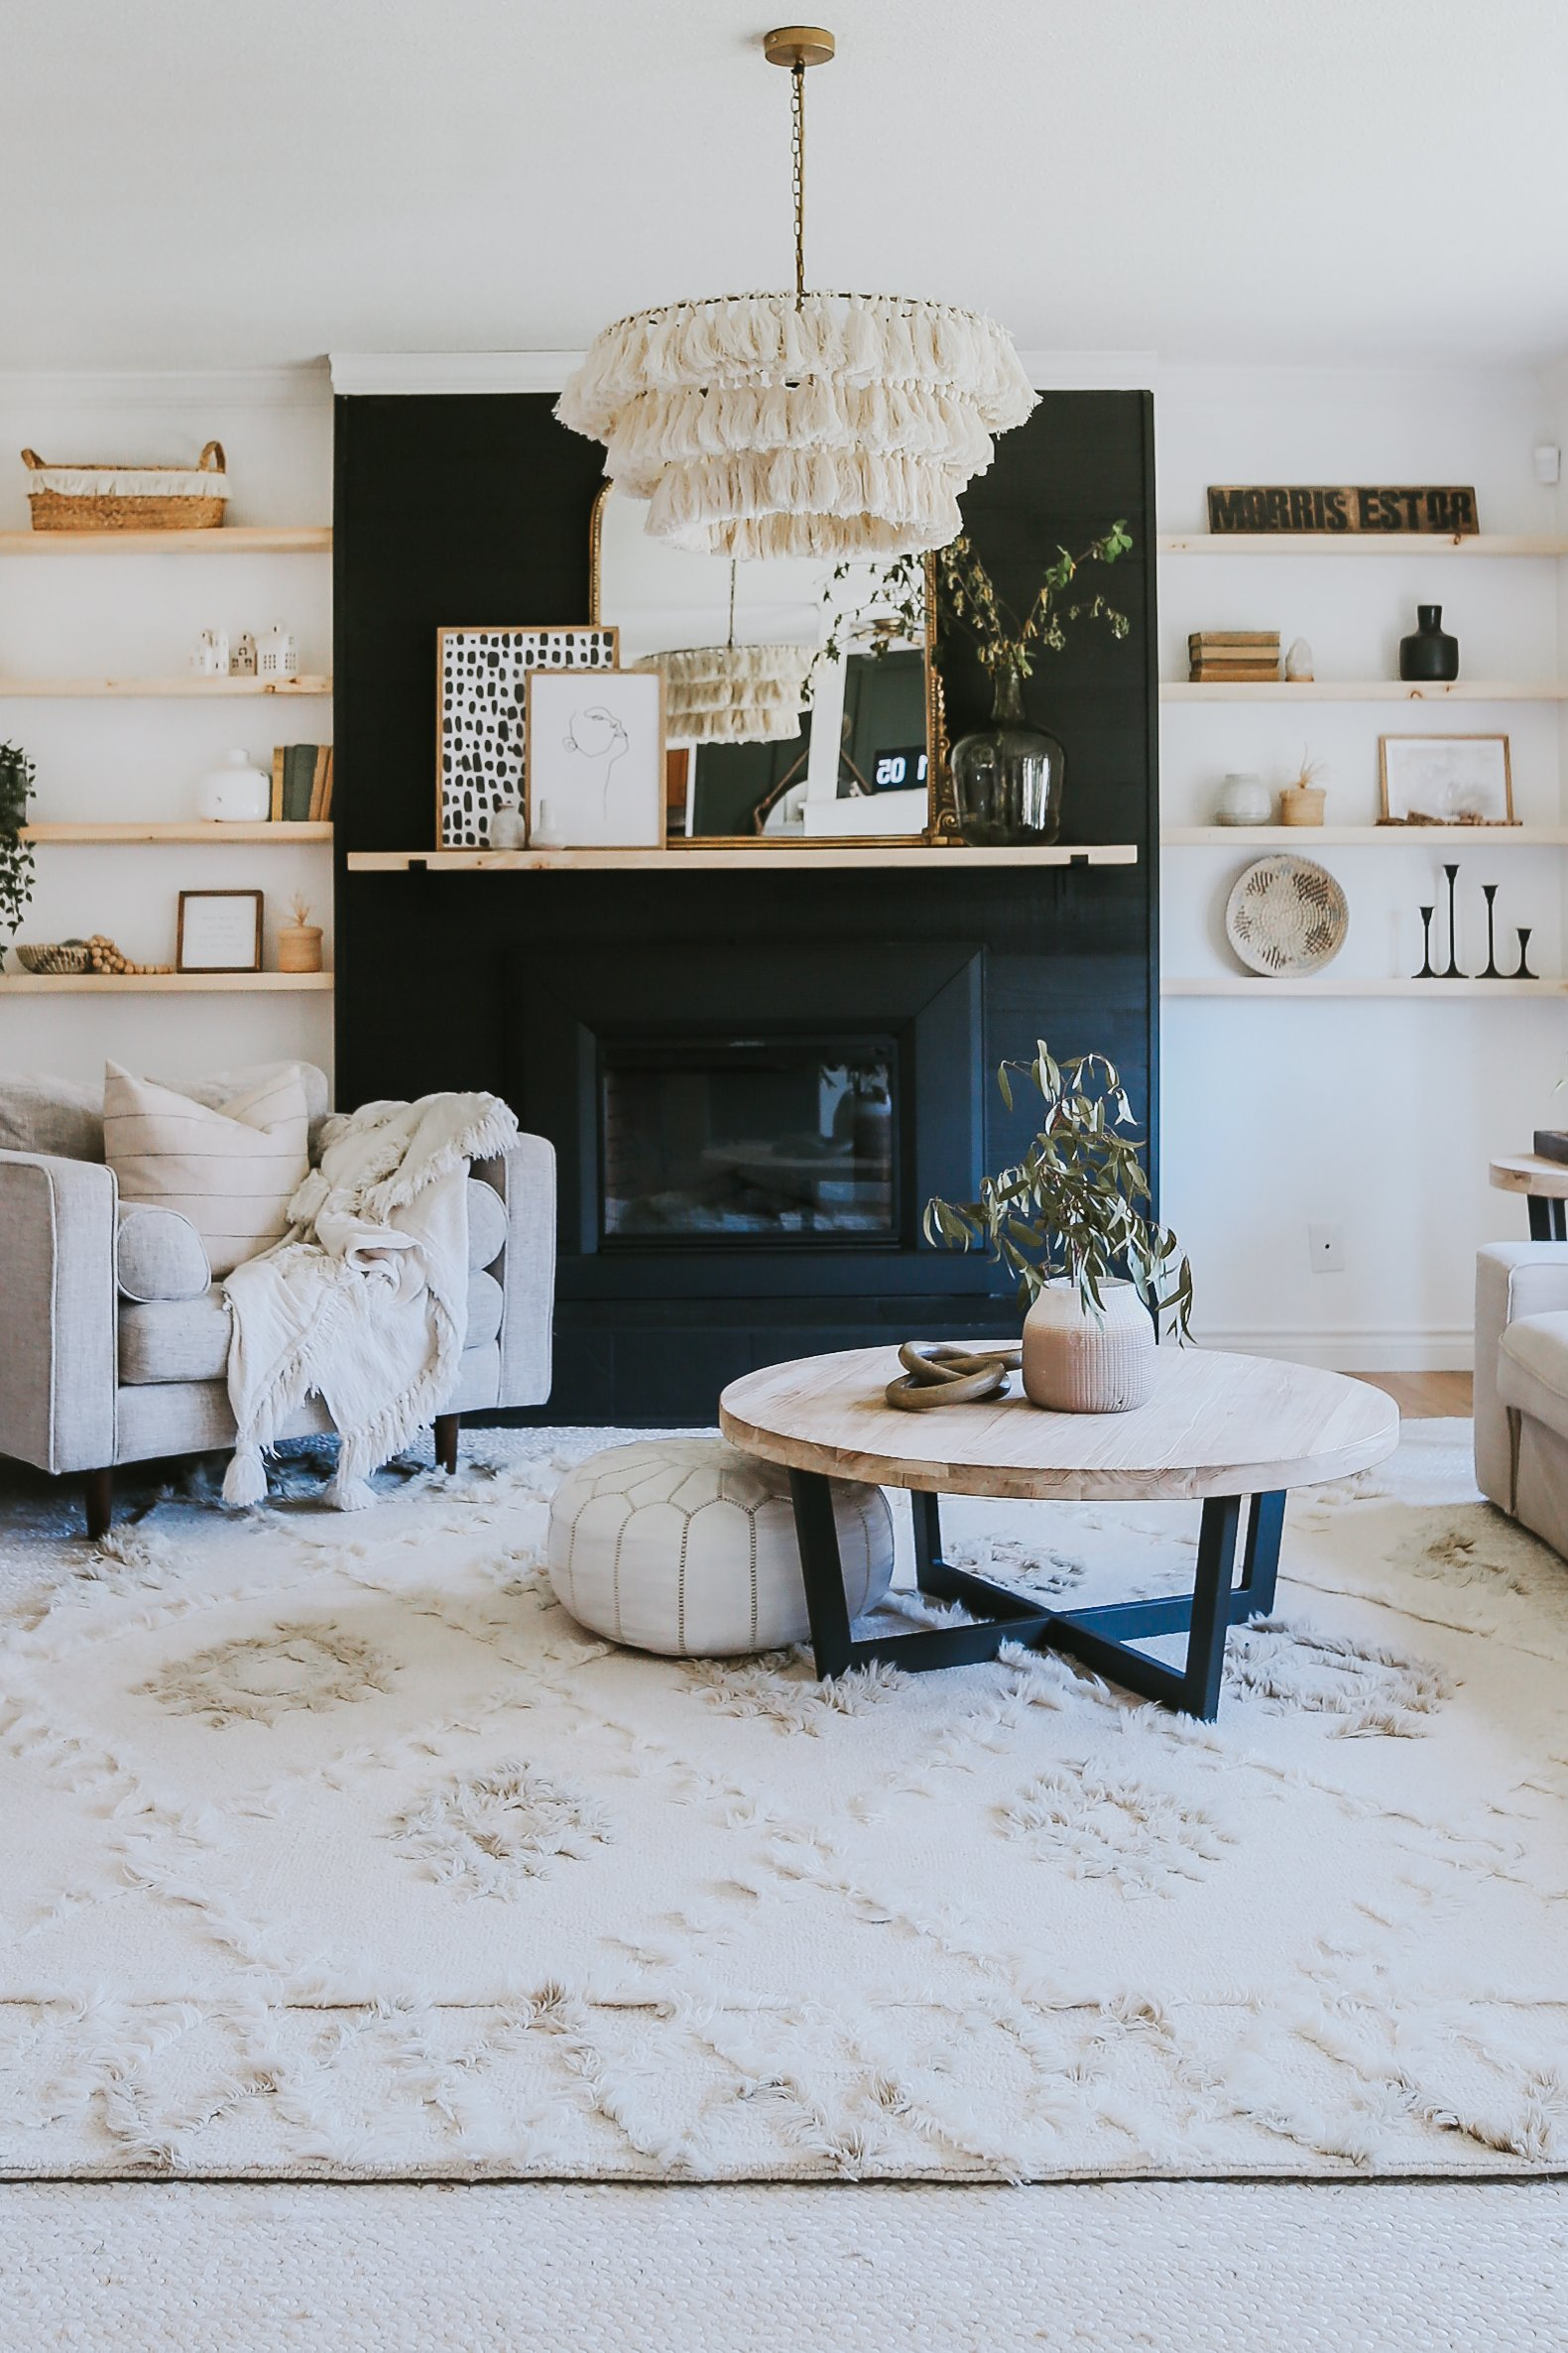 Top 9 Rugs In My Home and Where I Got Them. Also My Top Tips When Picking A Rug For Your Home